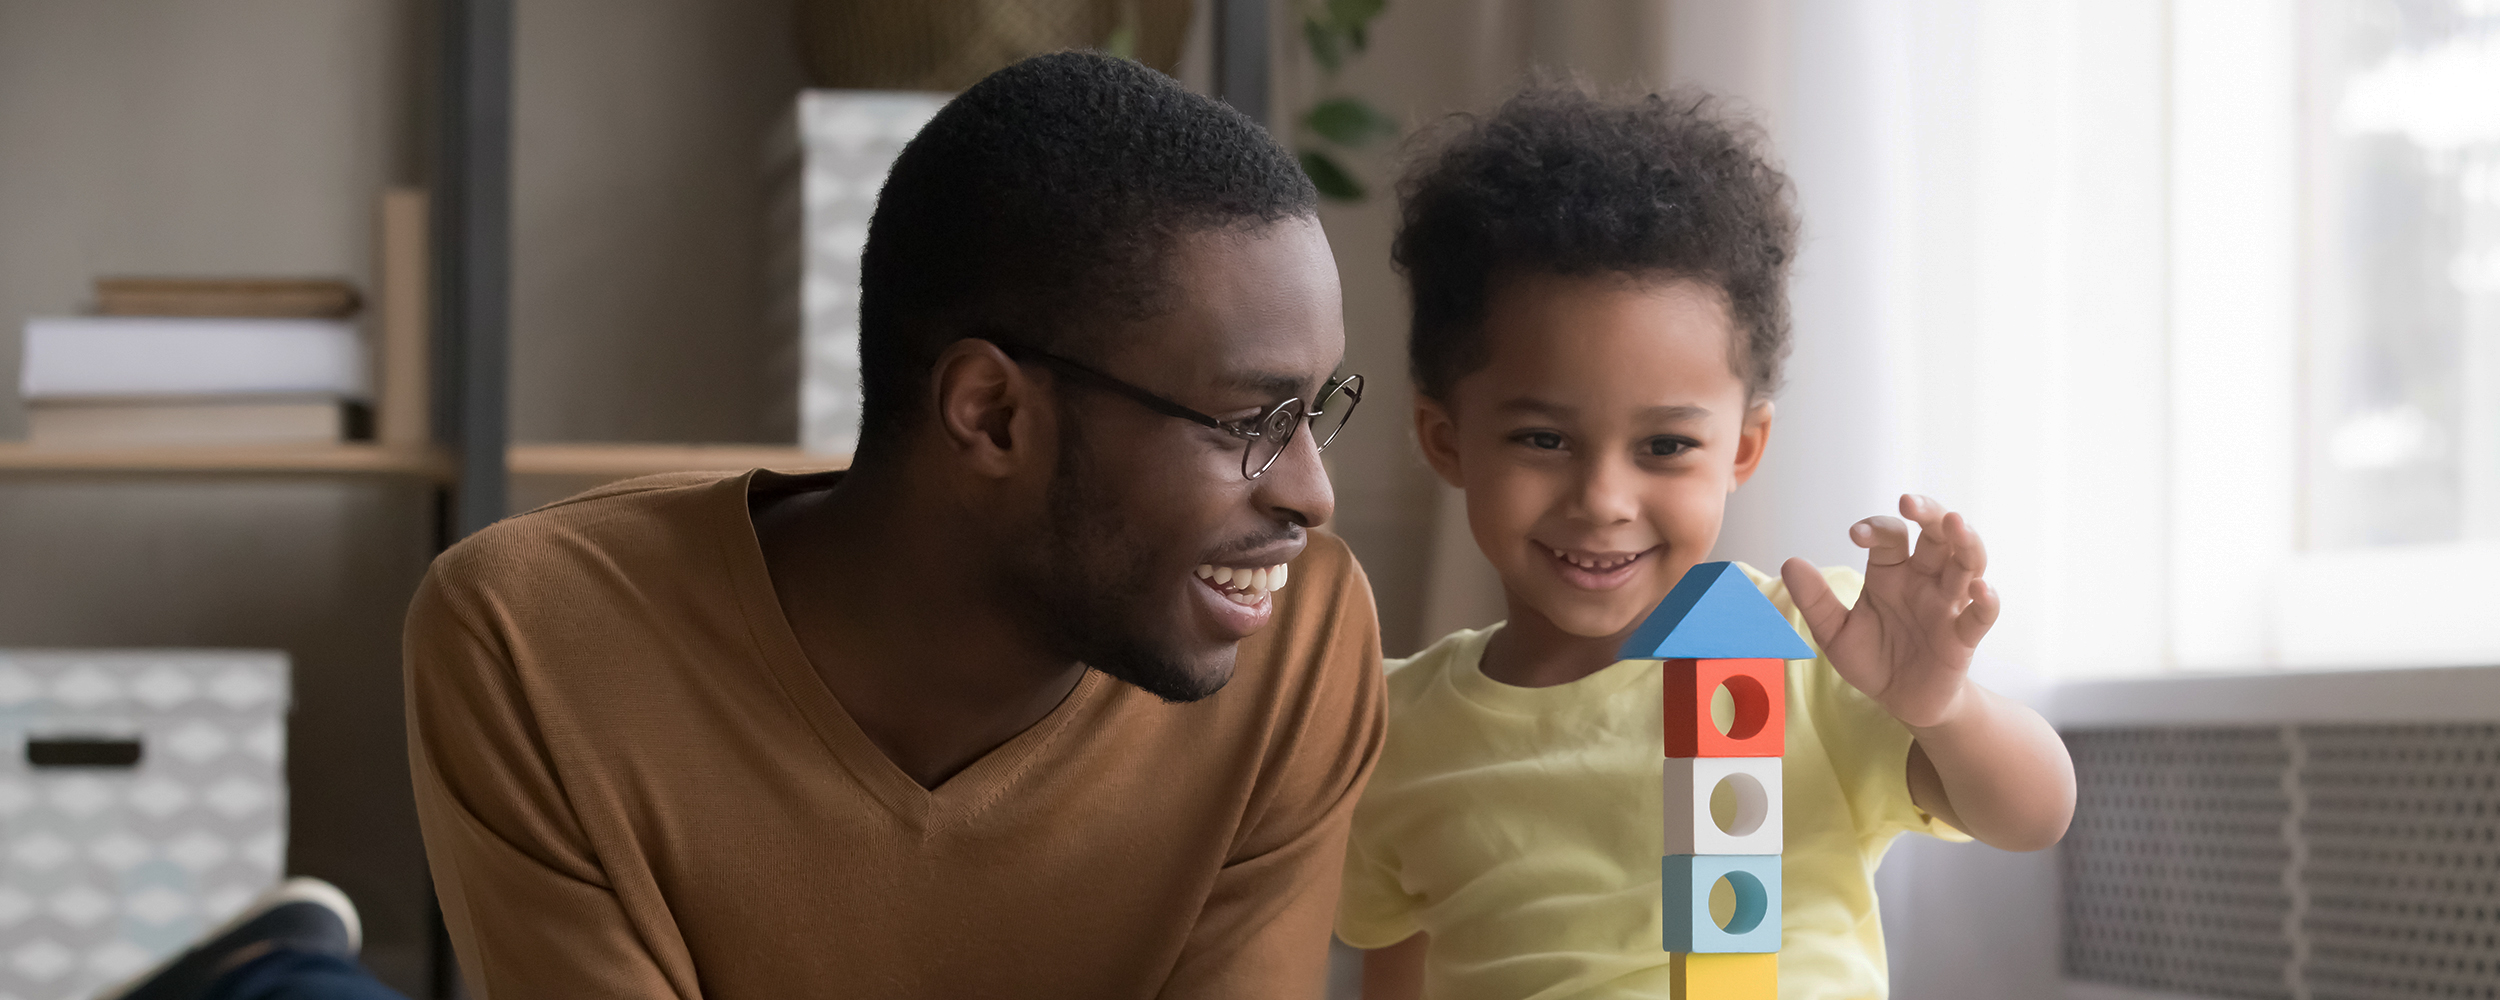 Community and Family Math | Promising Math 2019